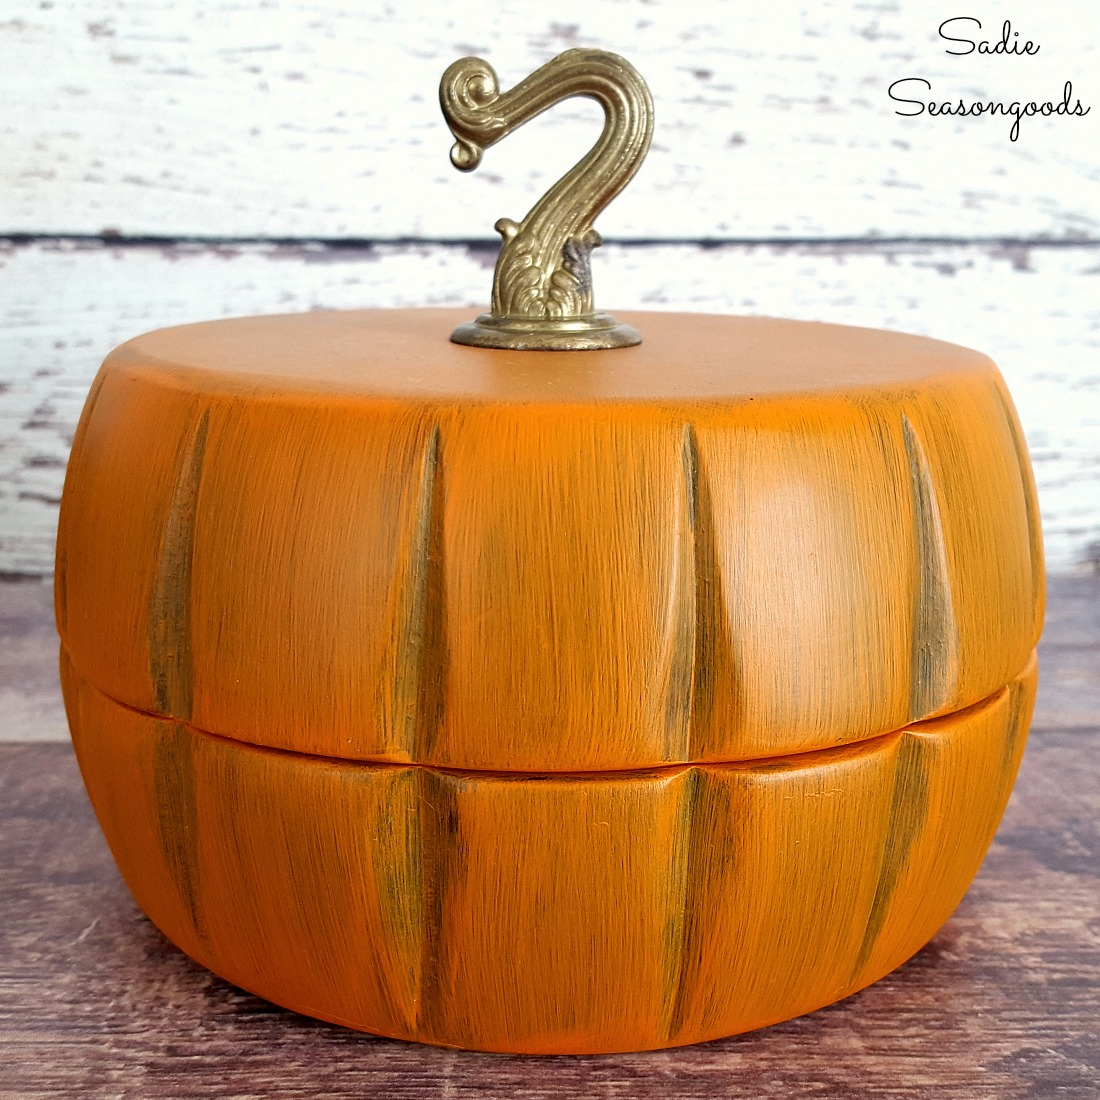 Trinket Box and Farmhouse Fall Decor from Wooden Salad Bowls